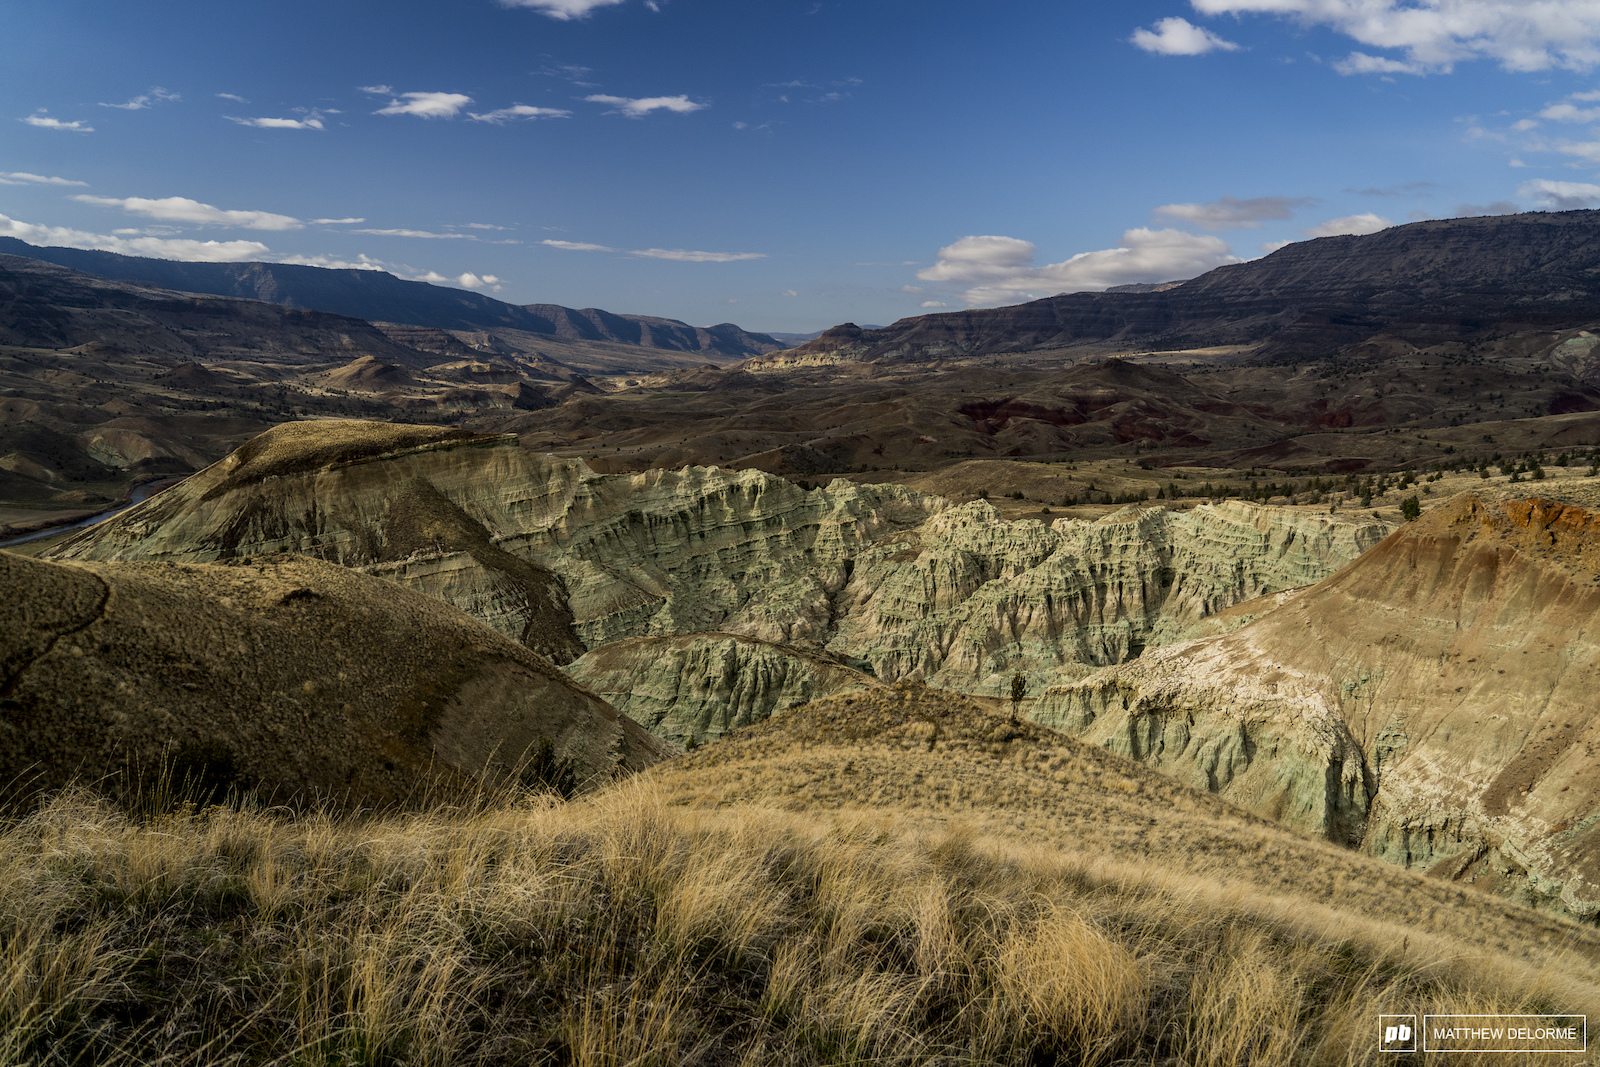 Layers of time. There are fossil records in those cliffs of all that came before us. John Day Oregon.